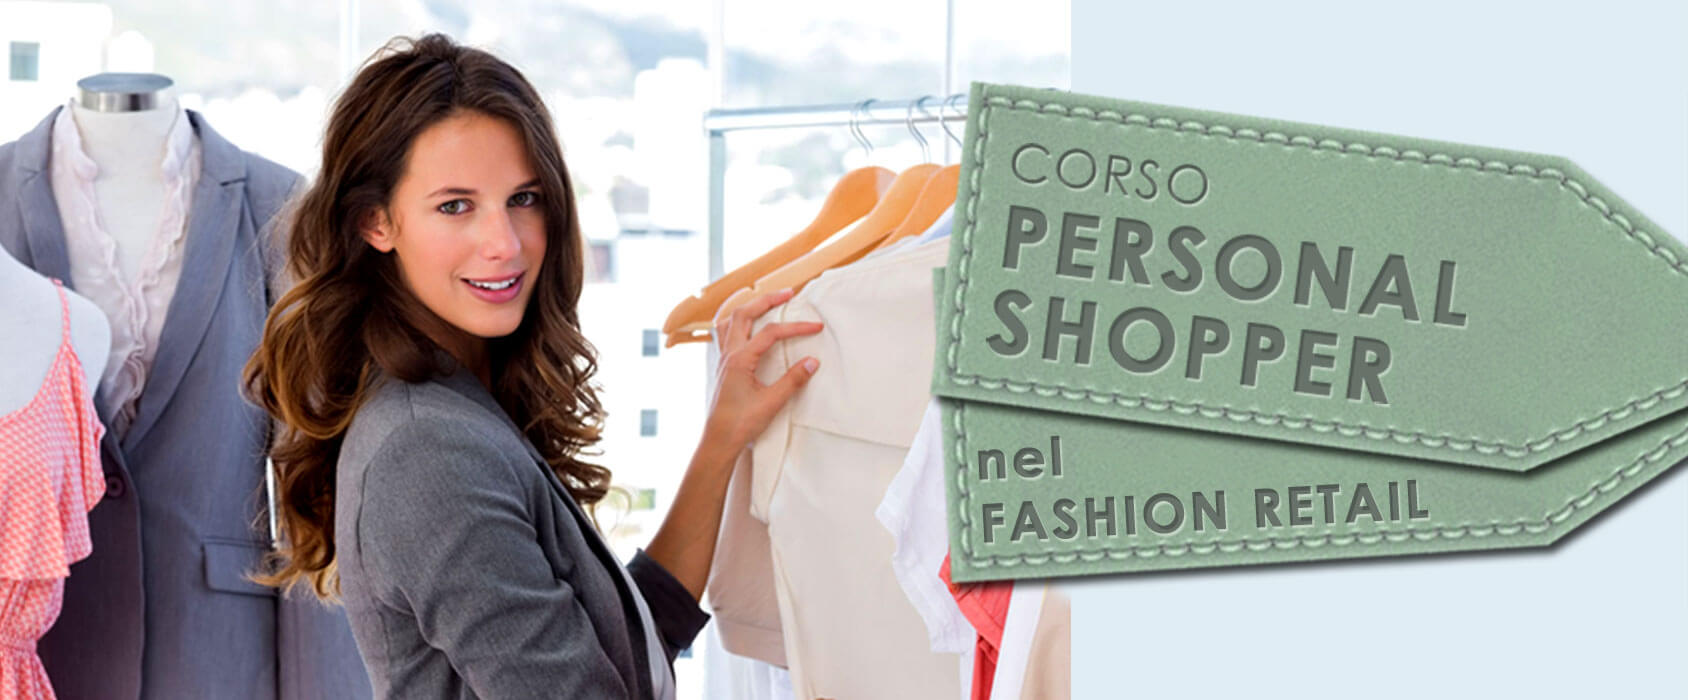 CORSO PERSONAL SHOPPER NEL FASHION RETAIL a FIRENZE